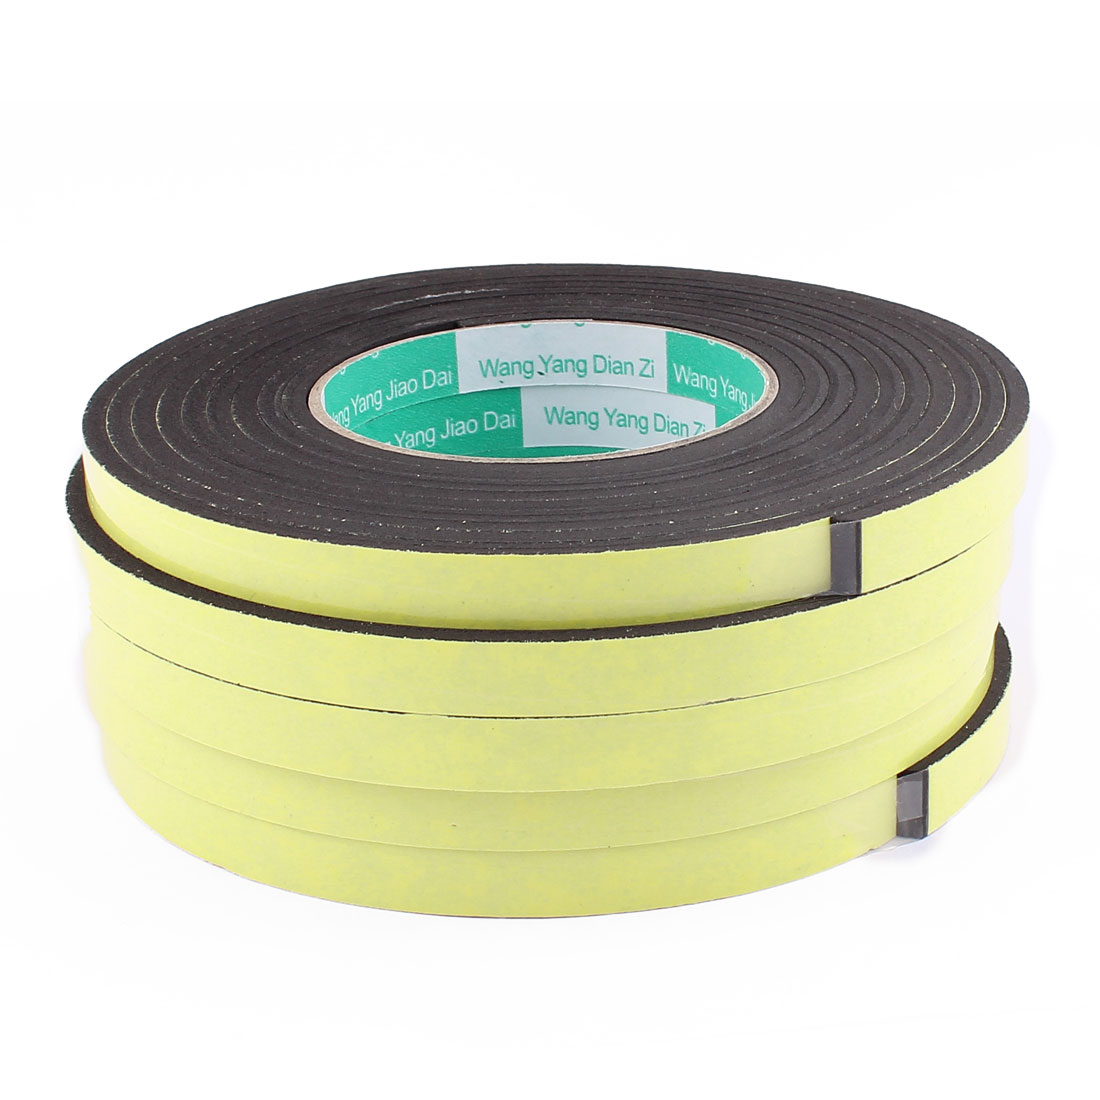 5 Pcs 12mmx4mm Single Sided Sponge Tape Adhesive Sticker Foam Glue Strip Sealing 3 Meters 10Ft